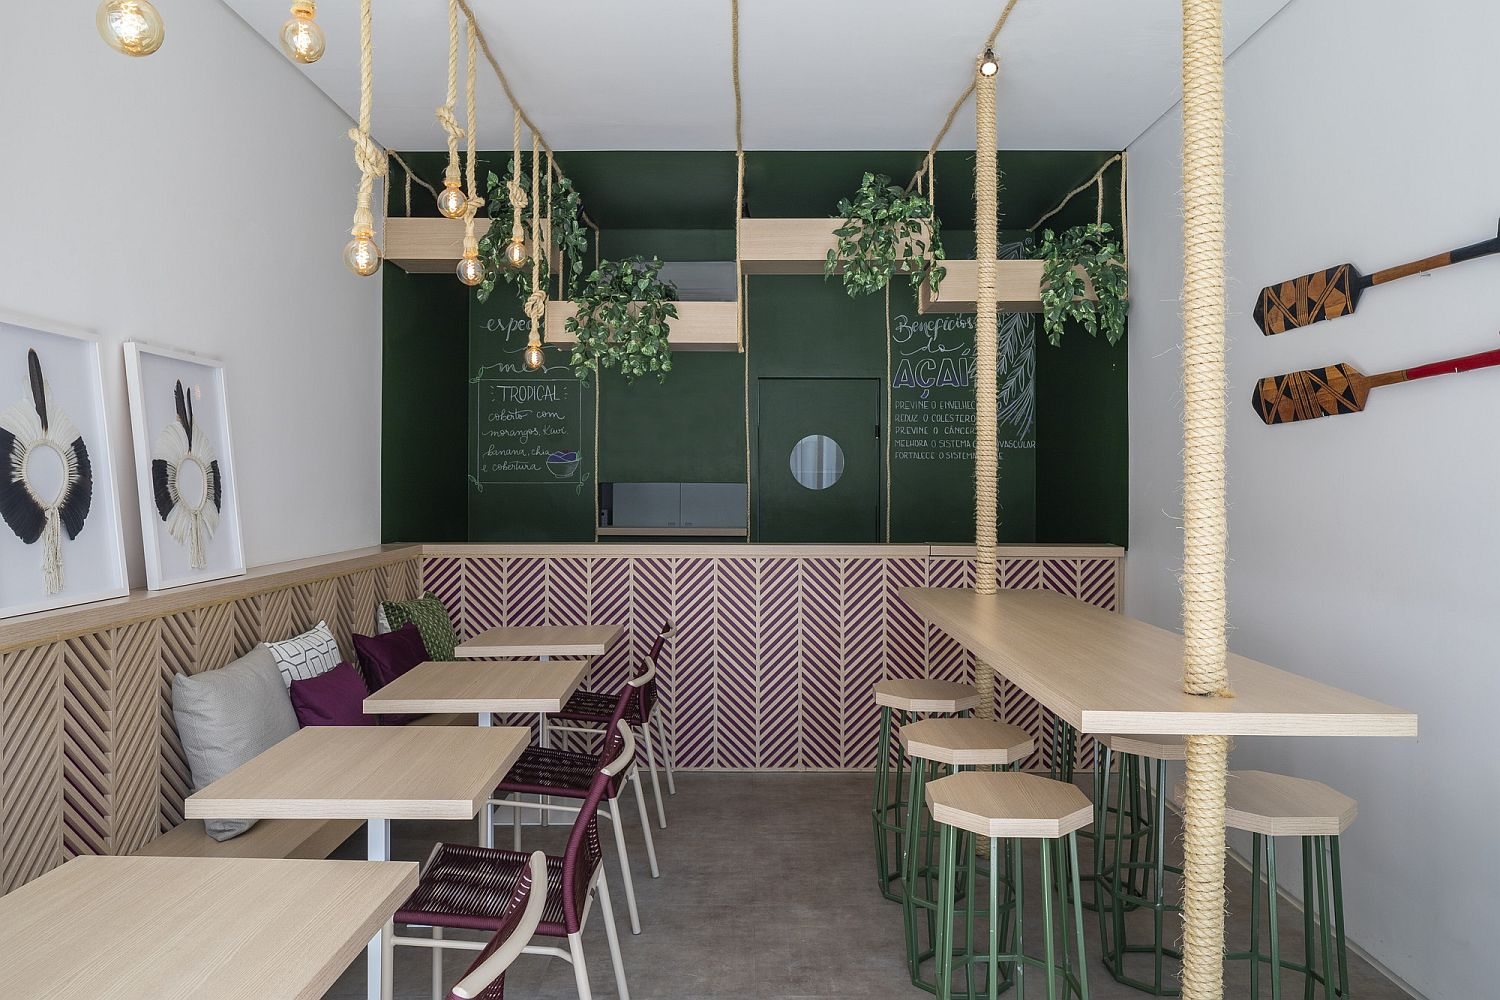 Rattan ropes, green and wood give the interior a brand new look